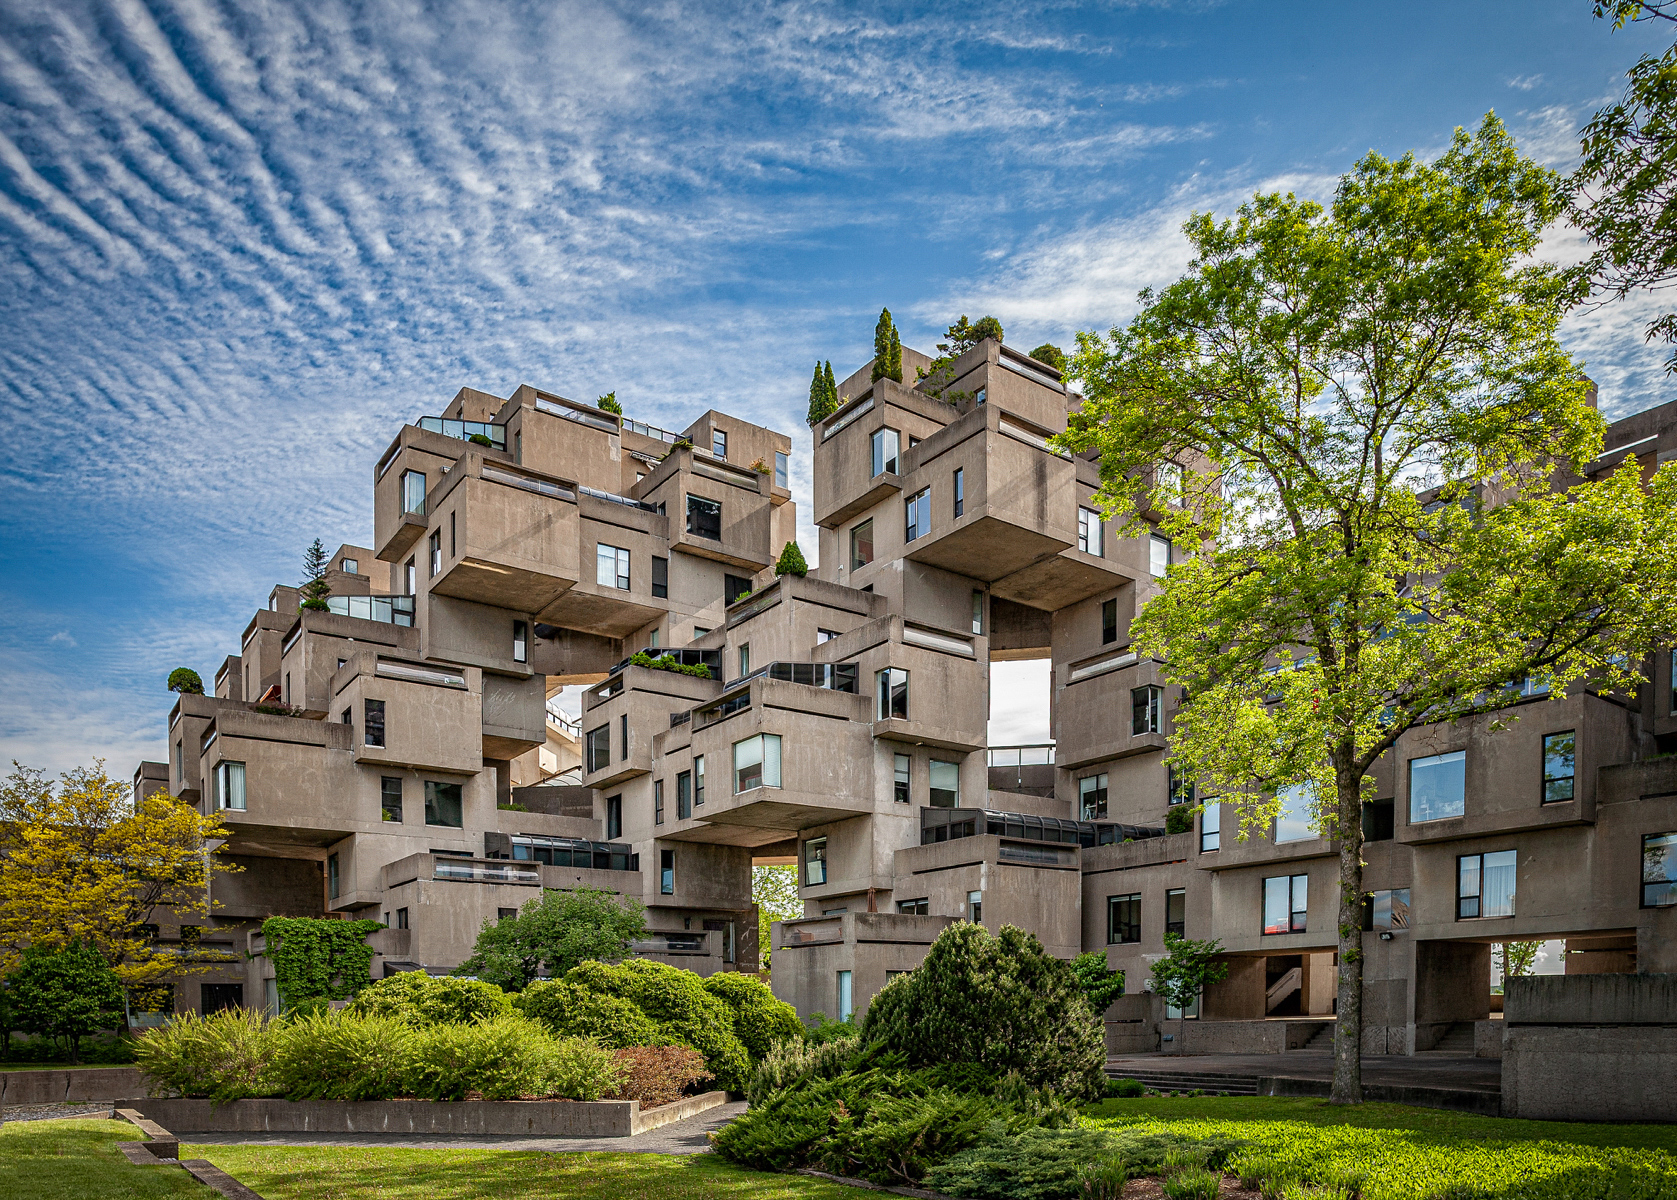 Habitat 67 (1967)  Moshe Safdie & Associates, Architects   (photo by Timothy Olcott)